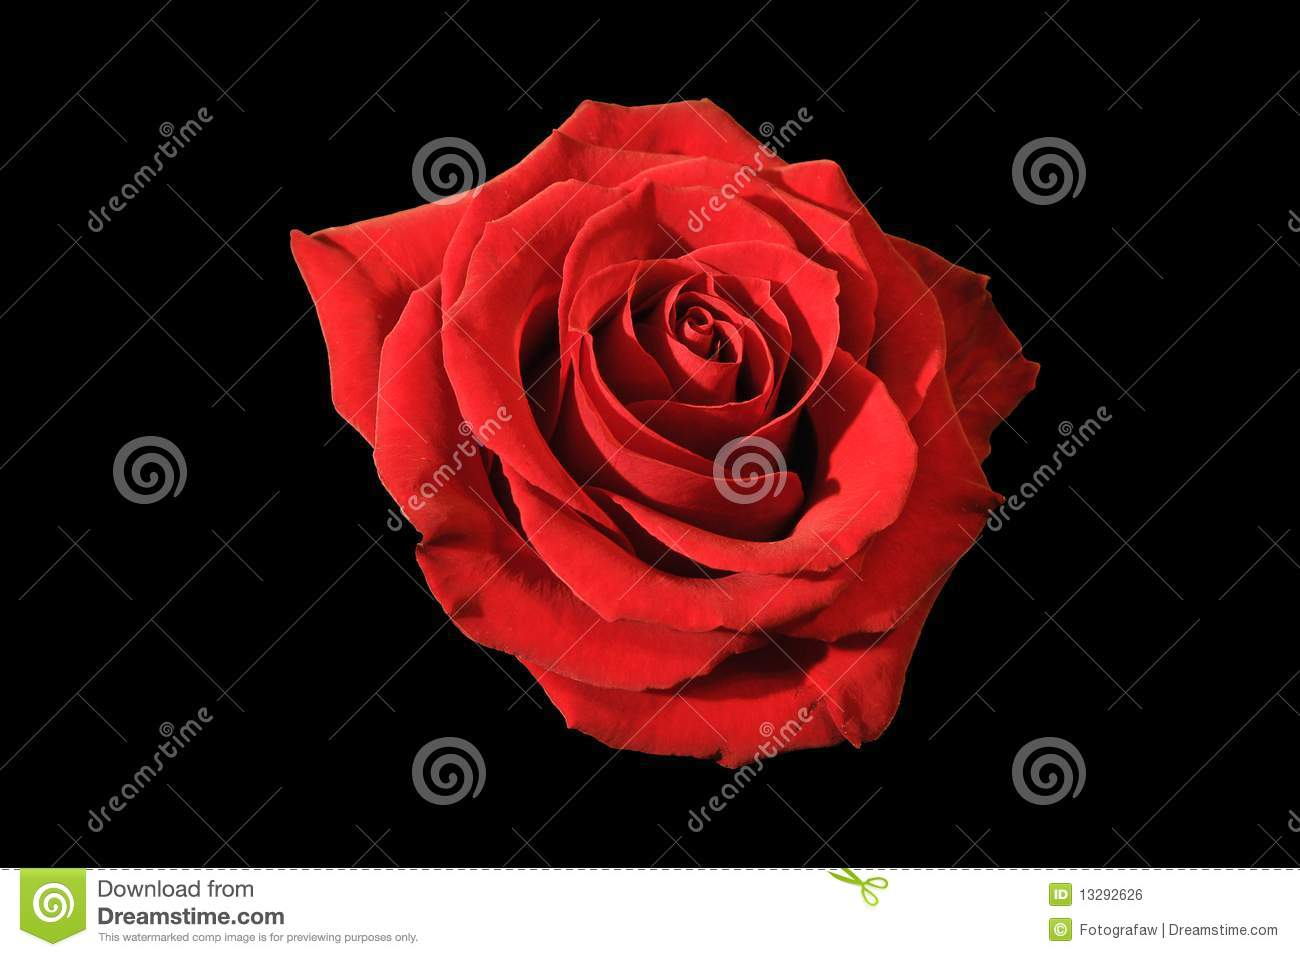 46 136 Red Rose Black Background Photos Free Royalty Free Stock Photos From Dreamstime